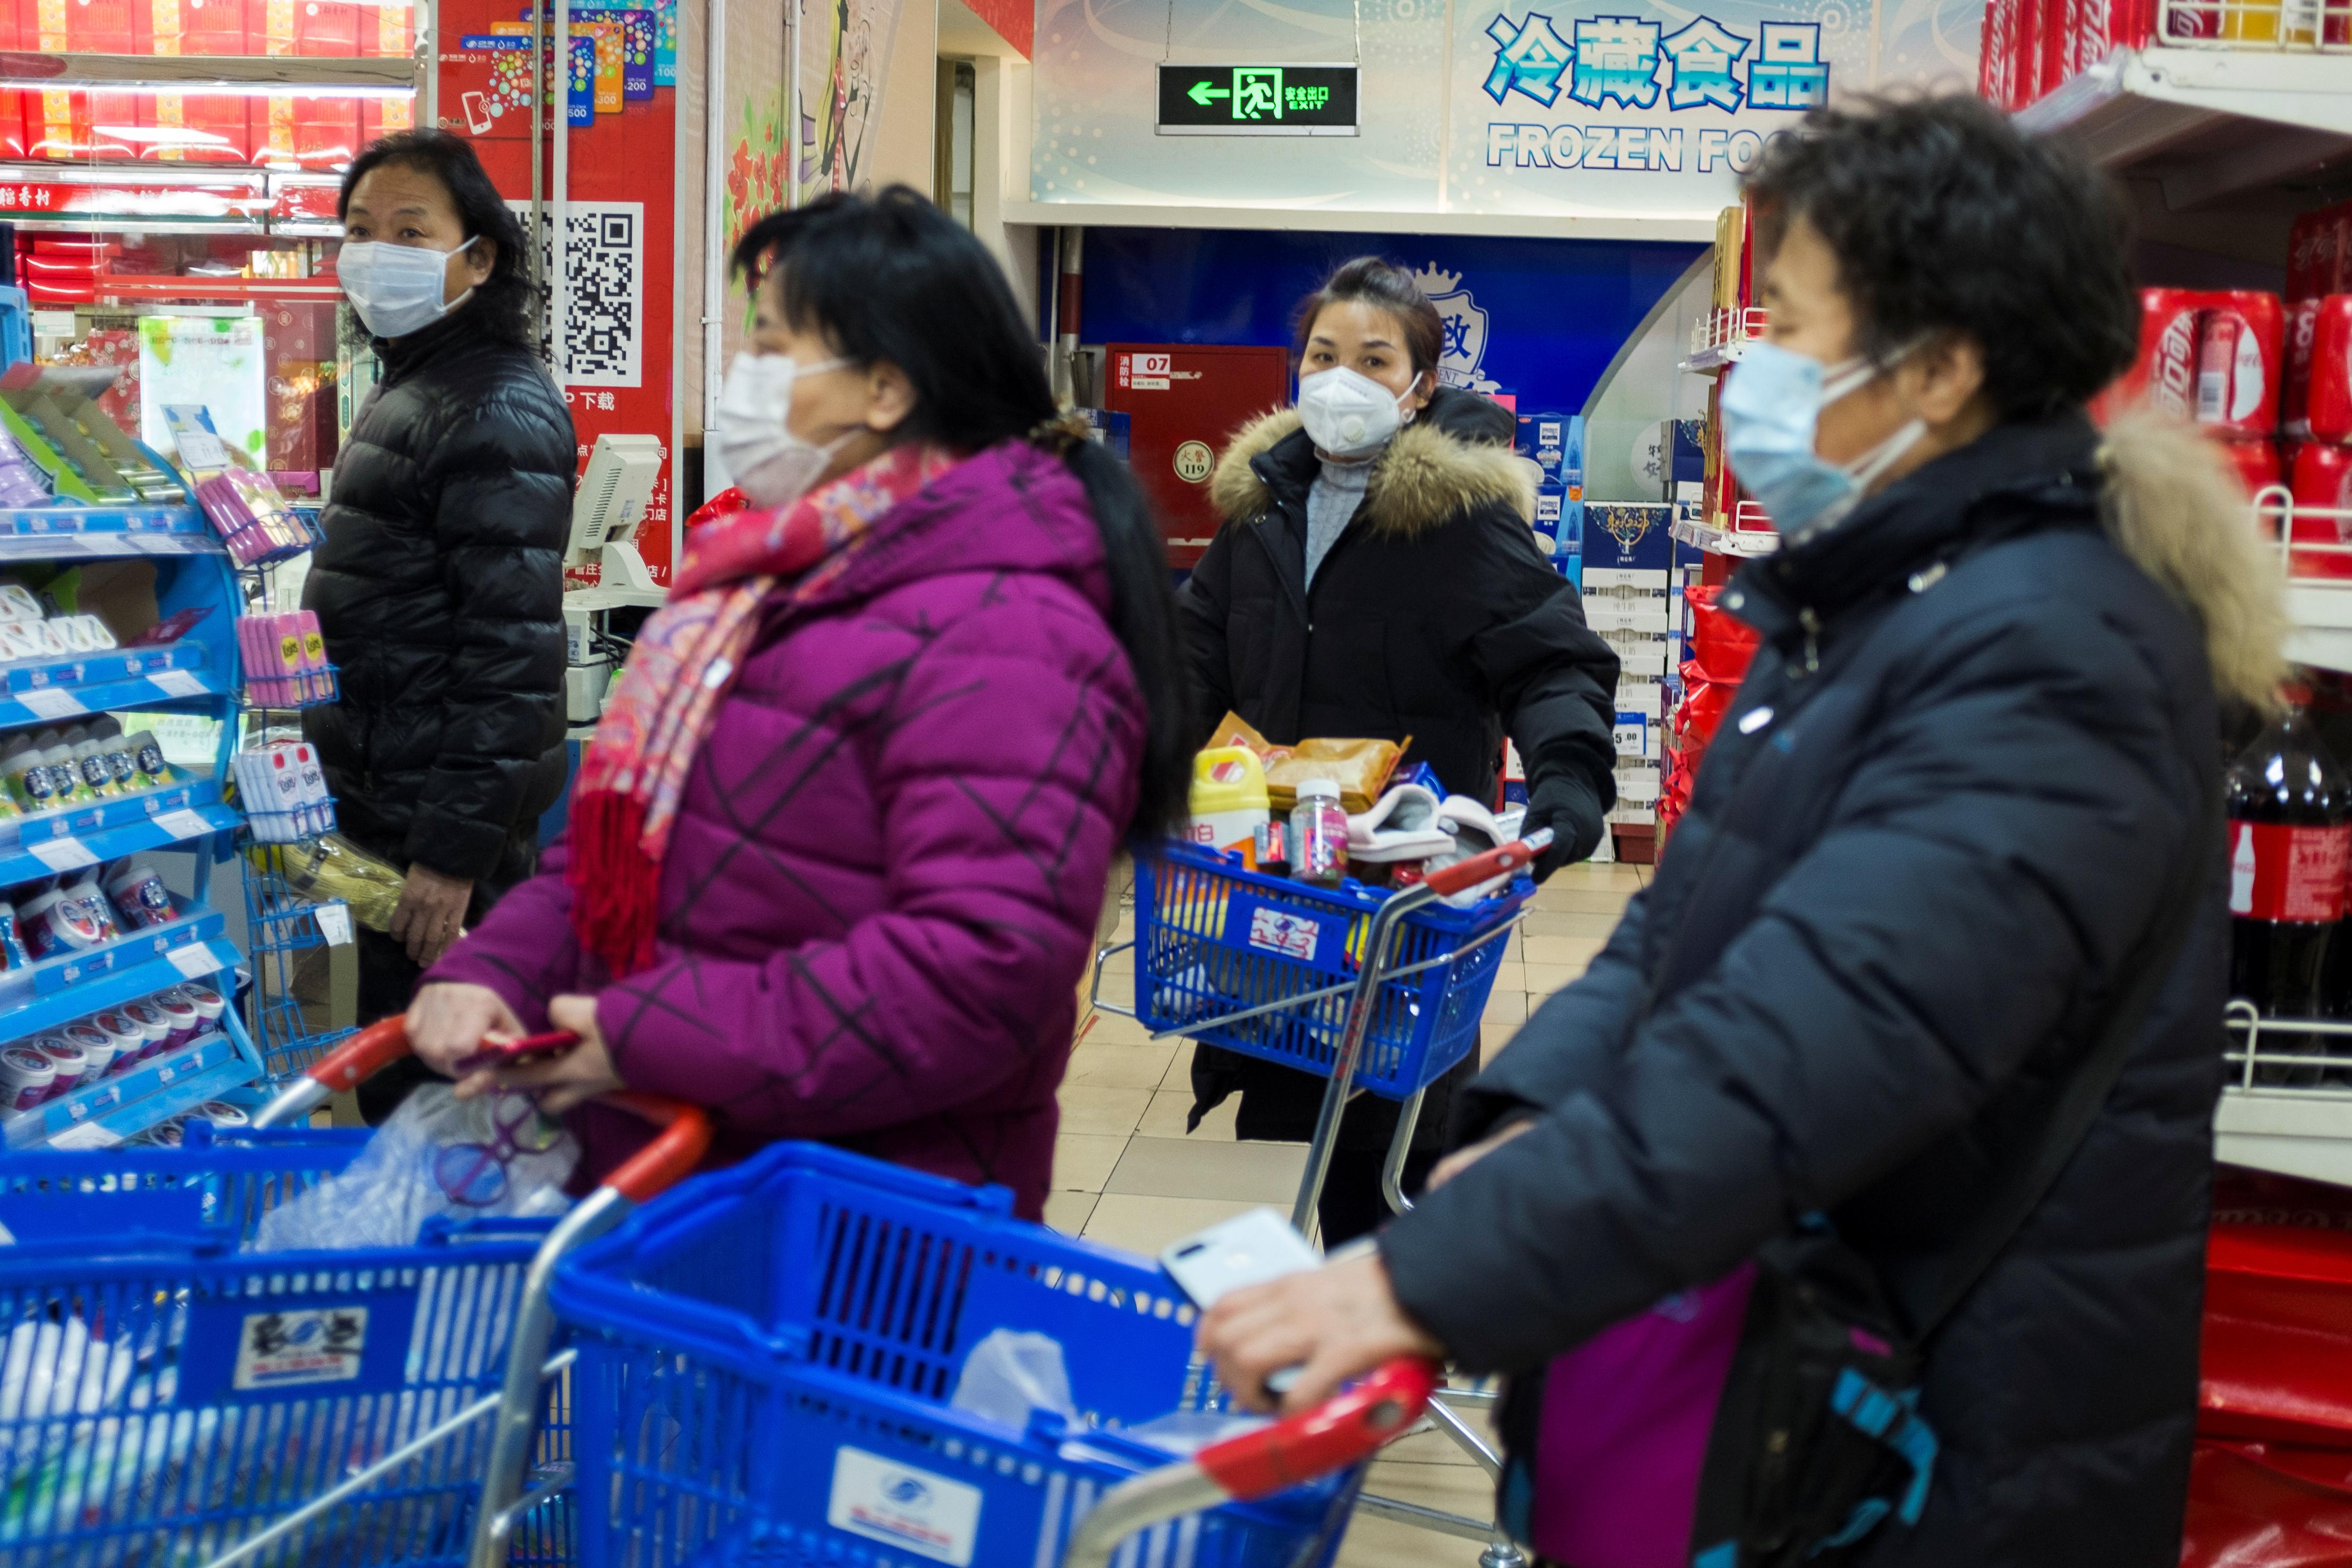 Latest on the coronavirus spreading in China and beyond